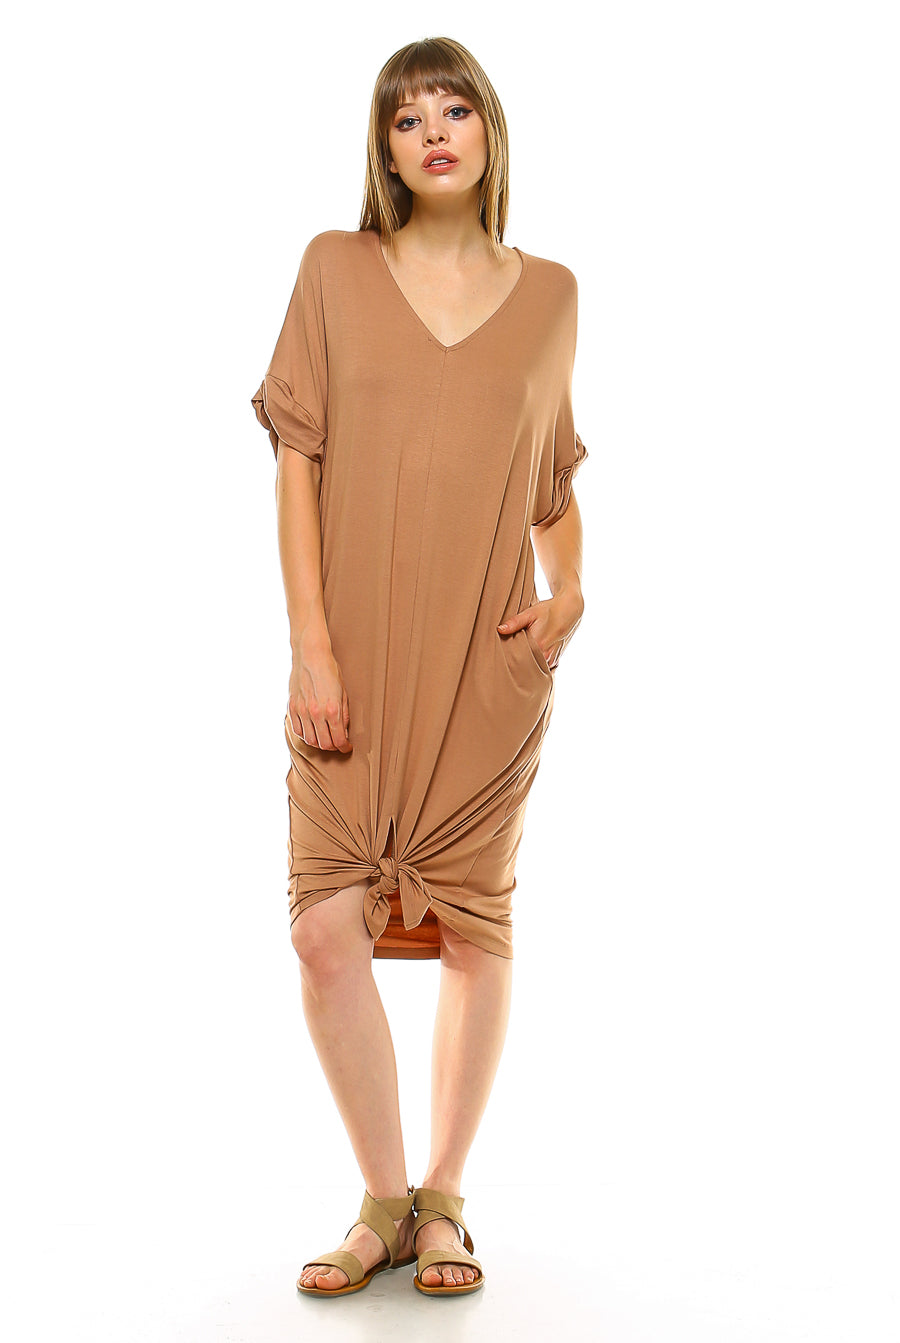 Teeze Me | Rolled-Up Short Sleeve V Neck Dress With Front Slit | Mocha